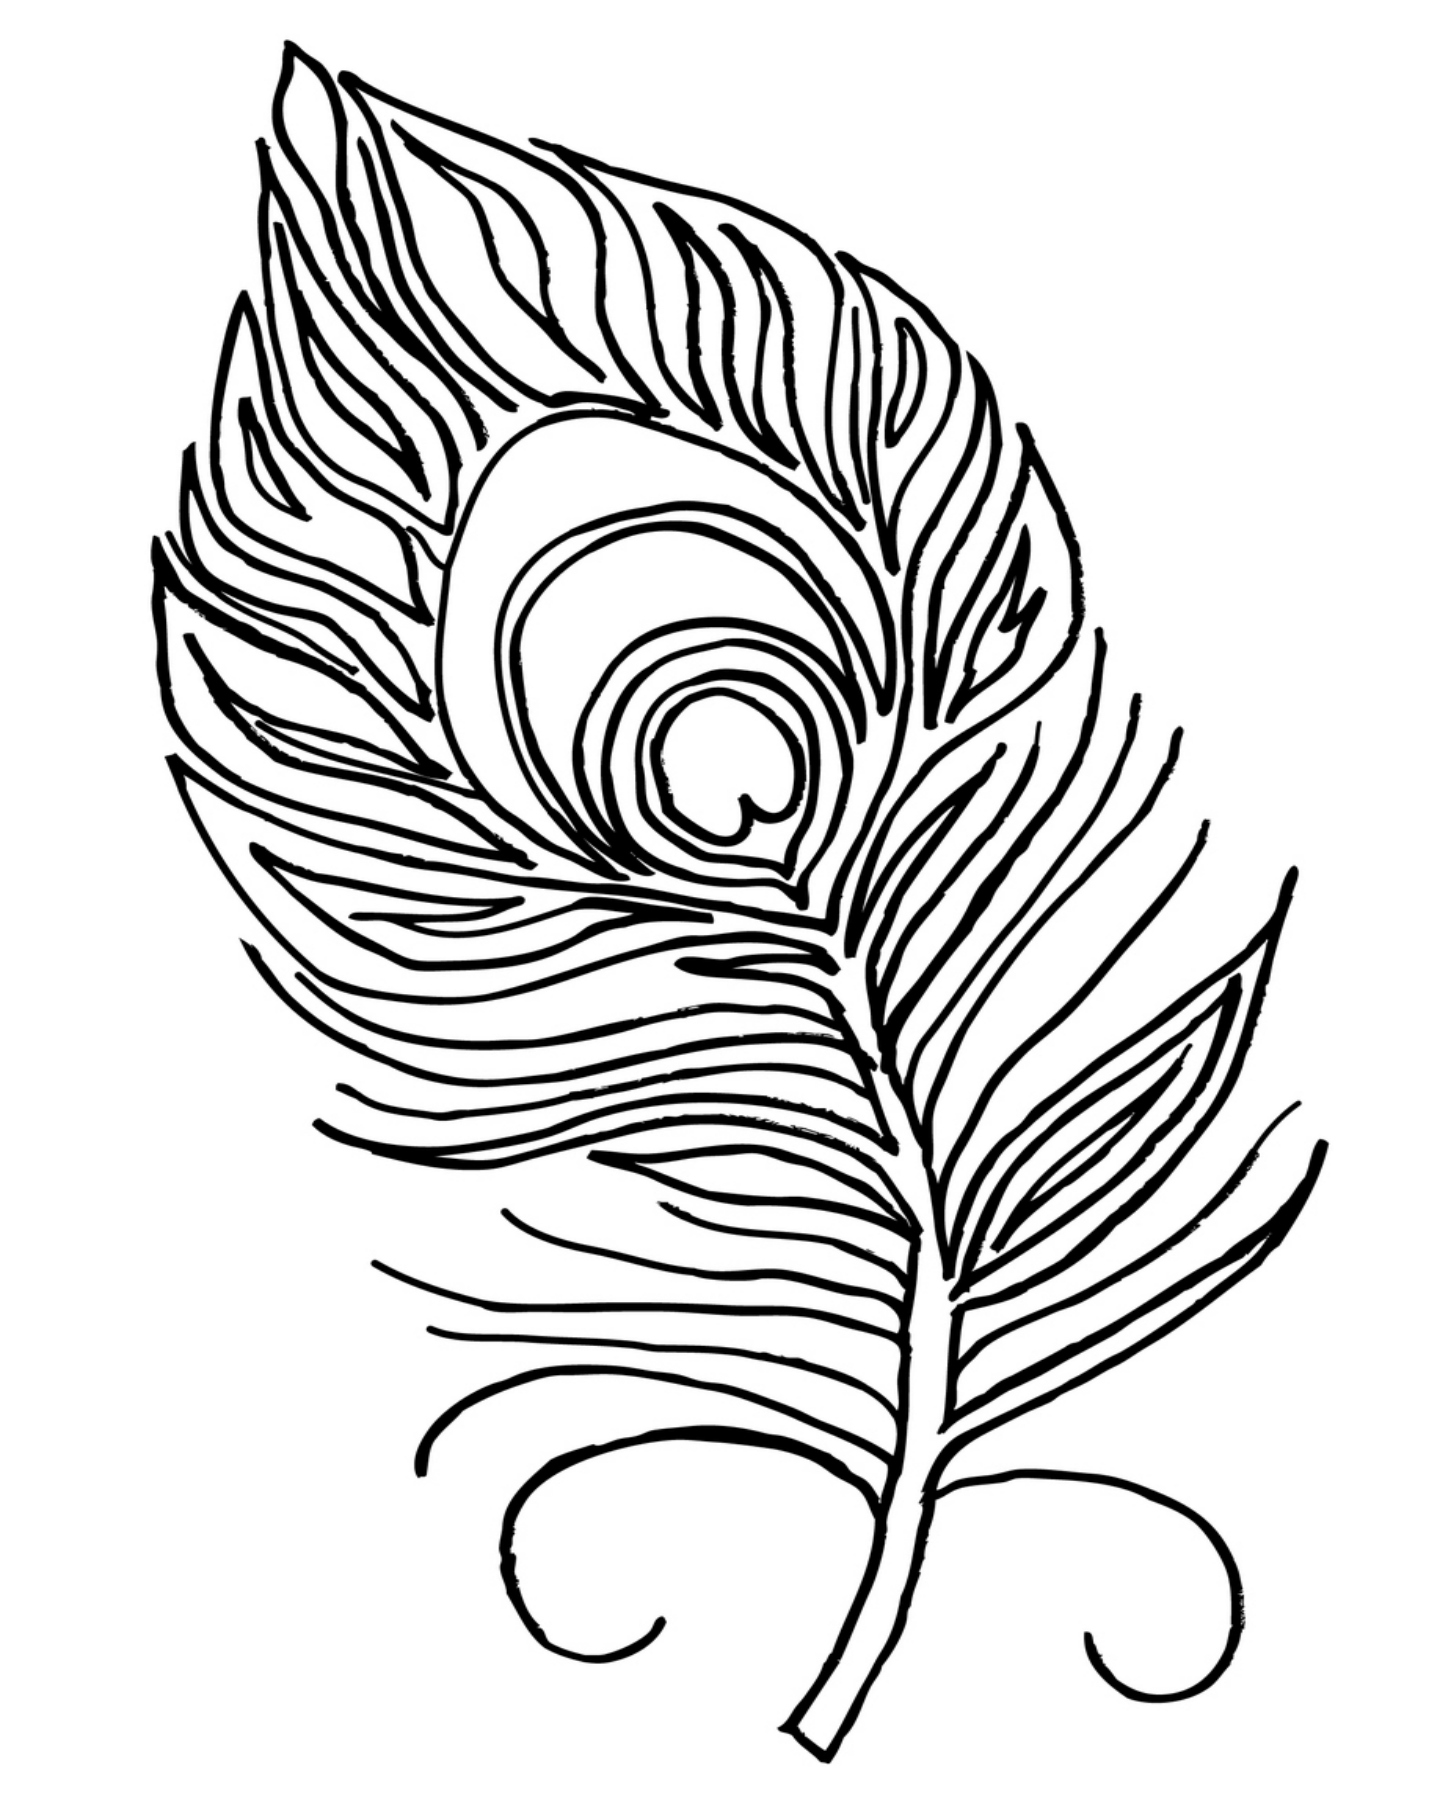 1440x1800 Coloring Pages Boho Feathers Bird Feather Types Printable Page